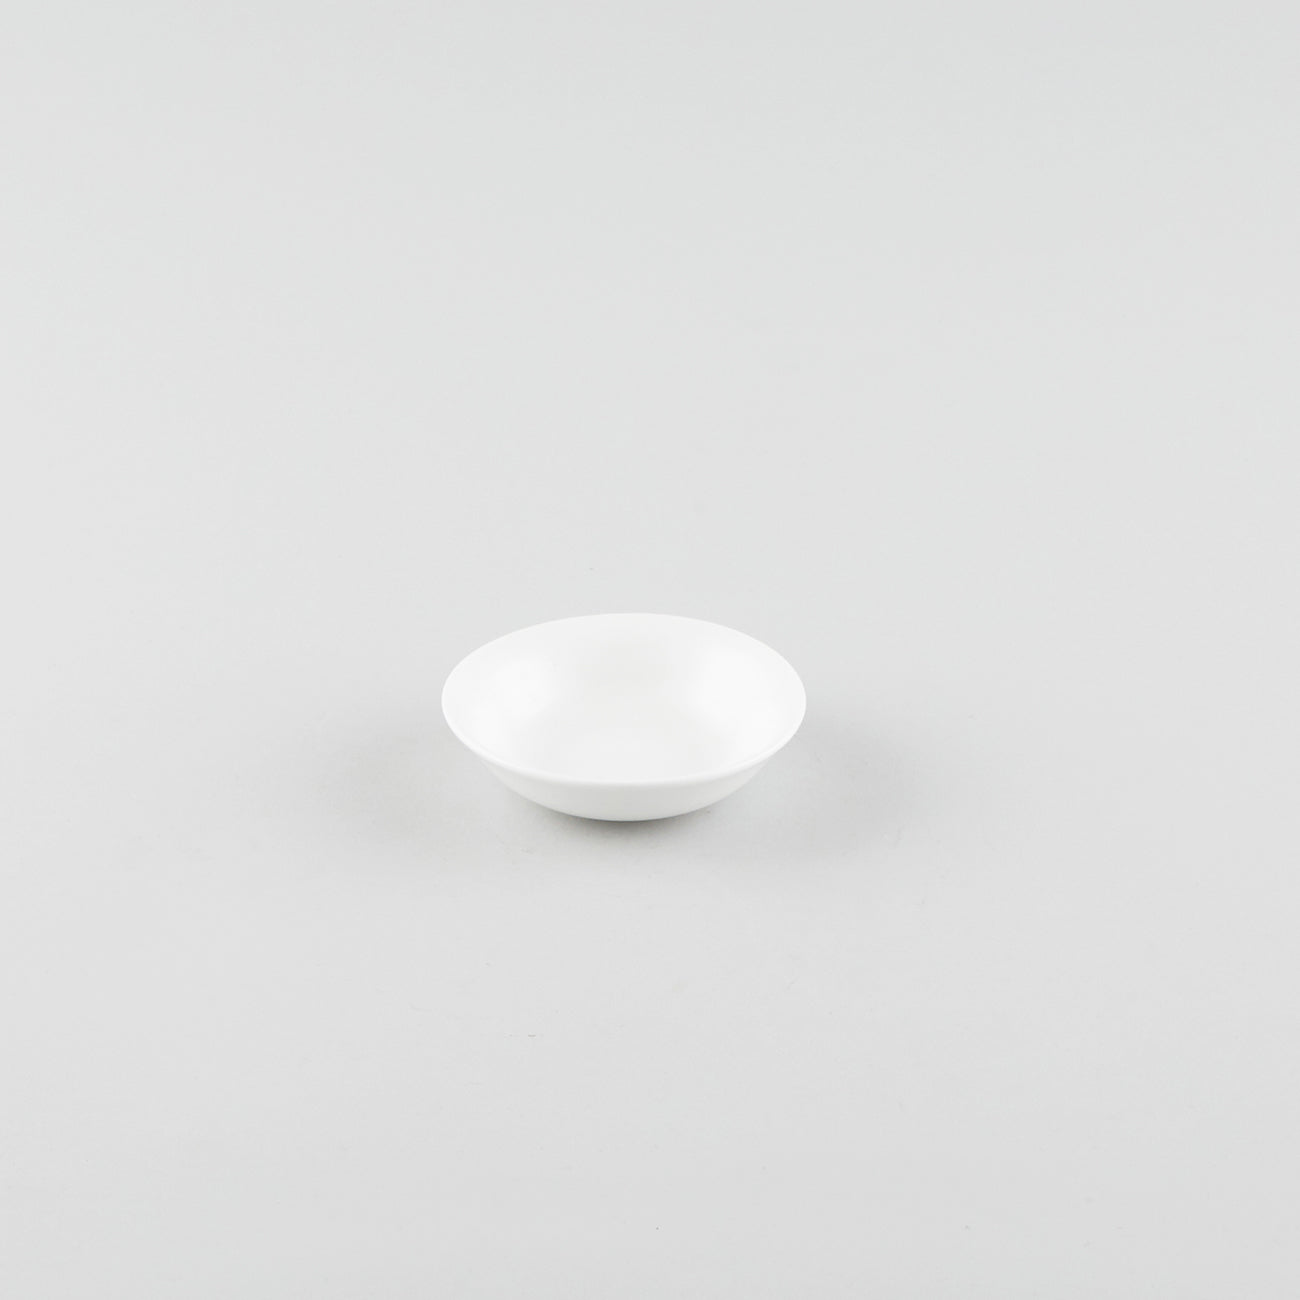 Finer Round Soy Sauce Dish - White